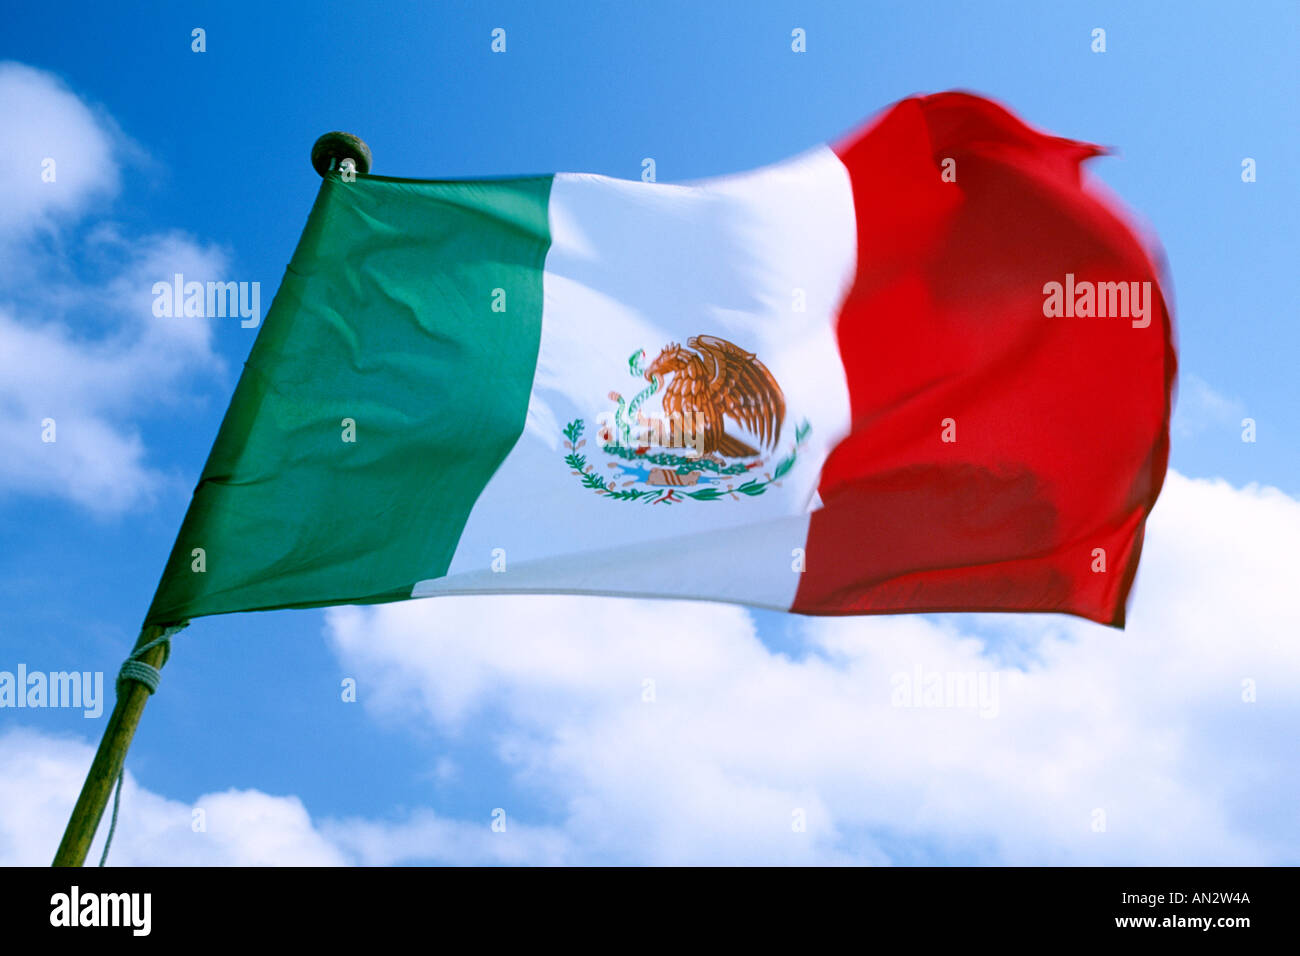 A Mexican flag against a blue sky. - Stock Image